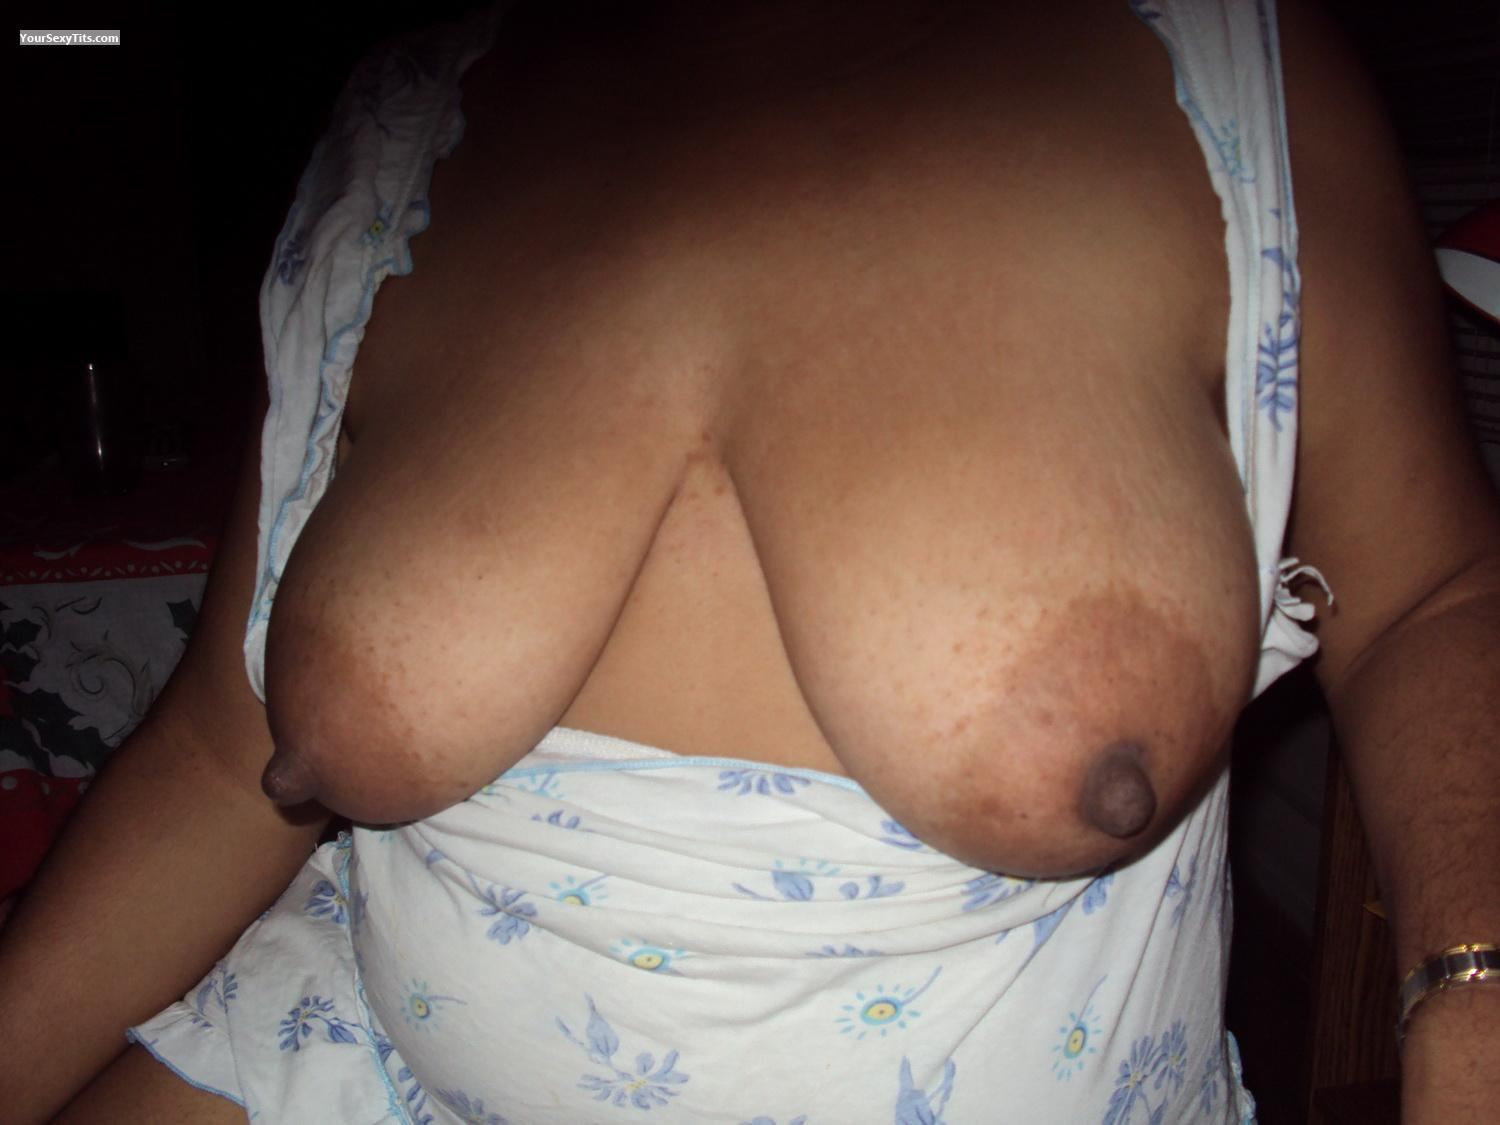 Tit Flash: My Big Tits (Selfie) - LMB from Panama